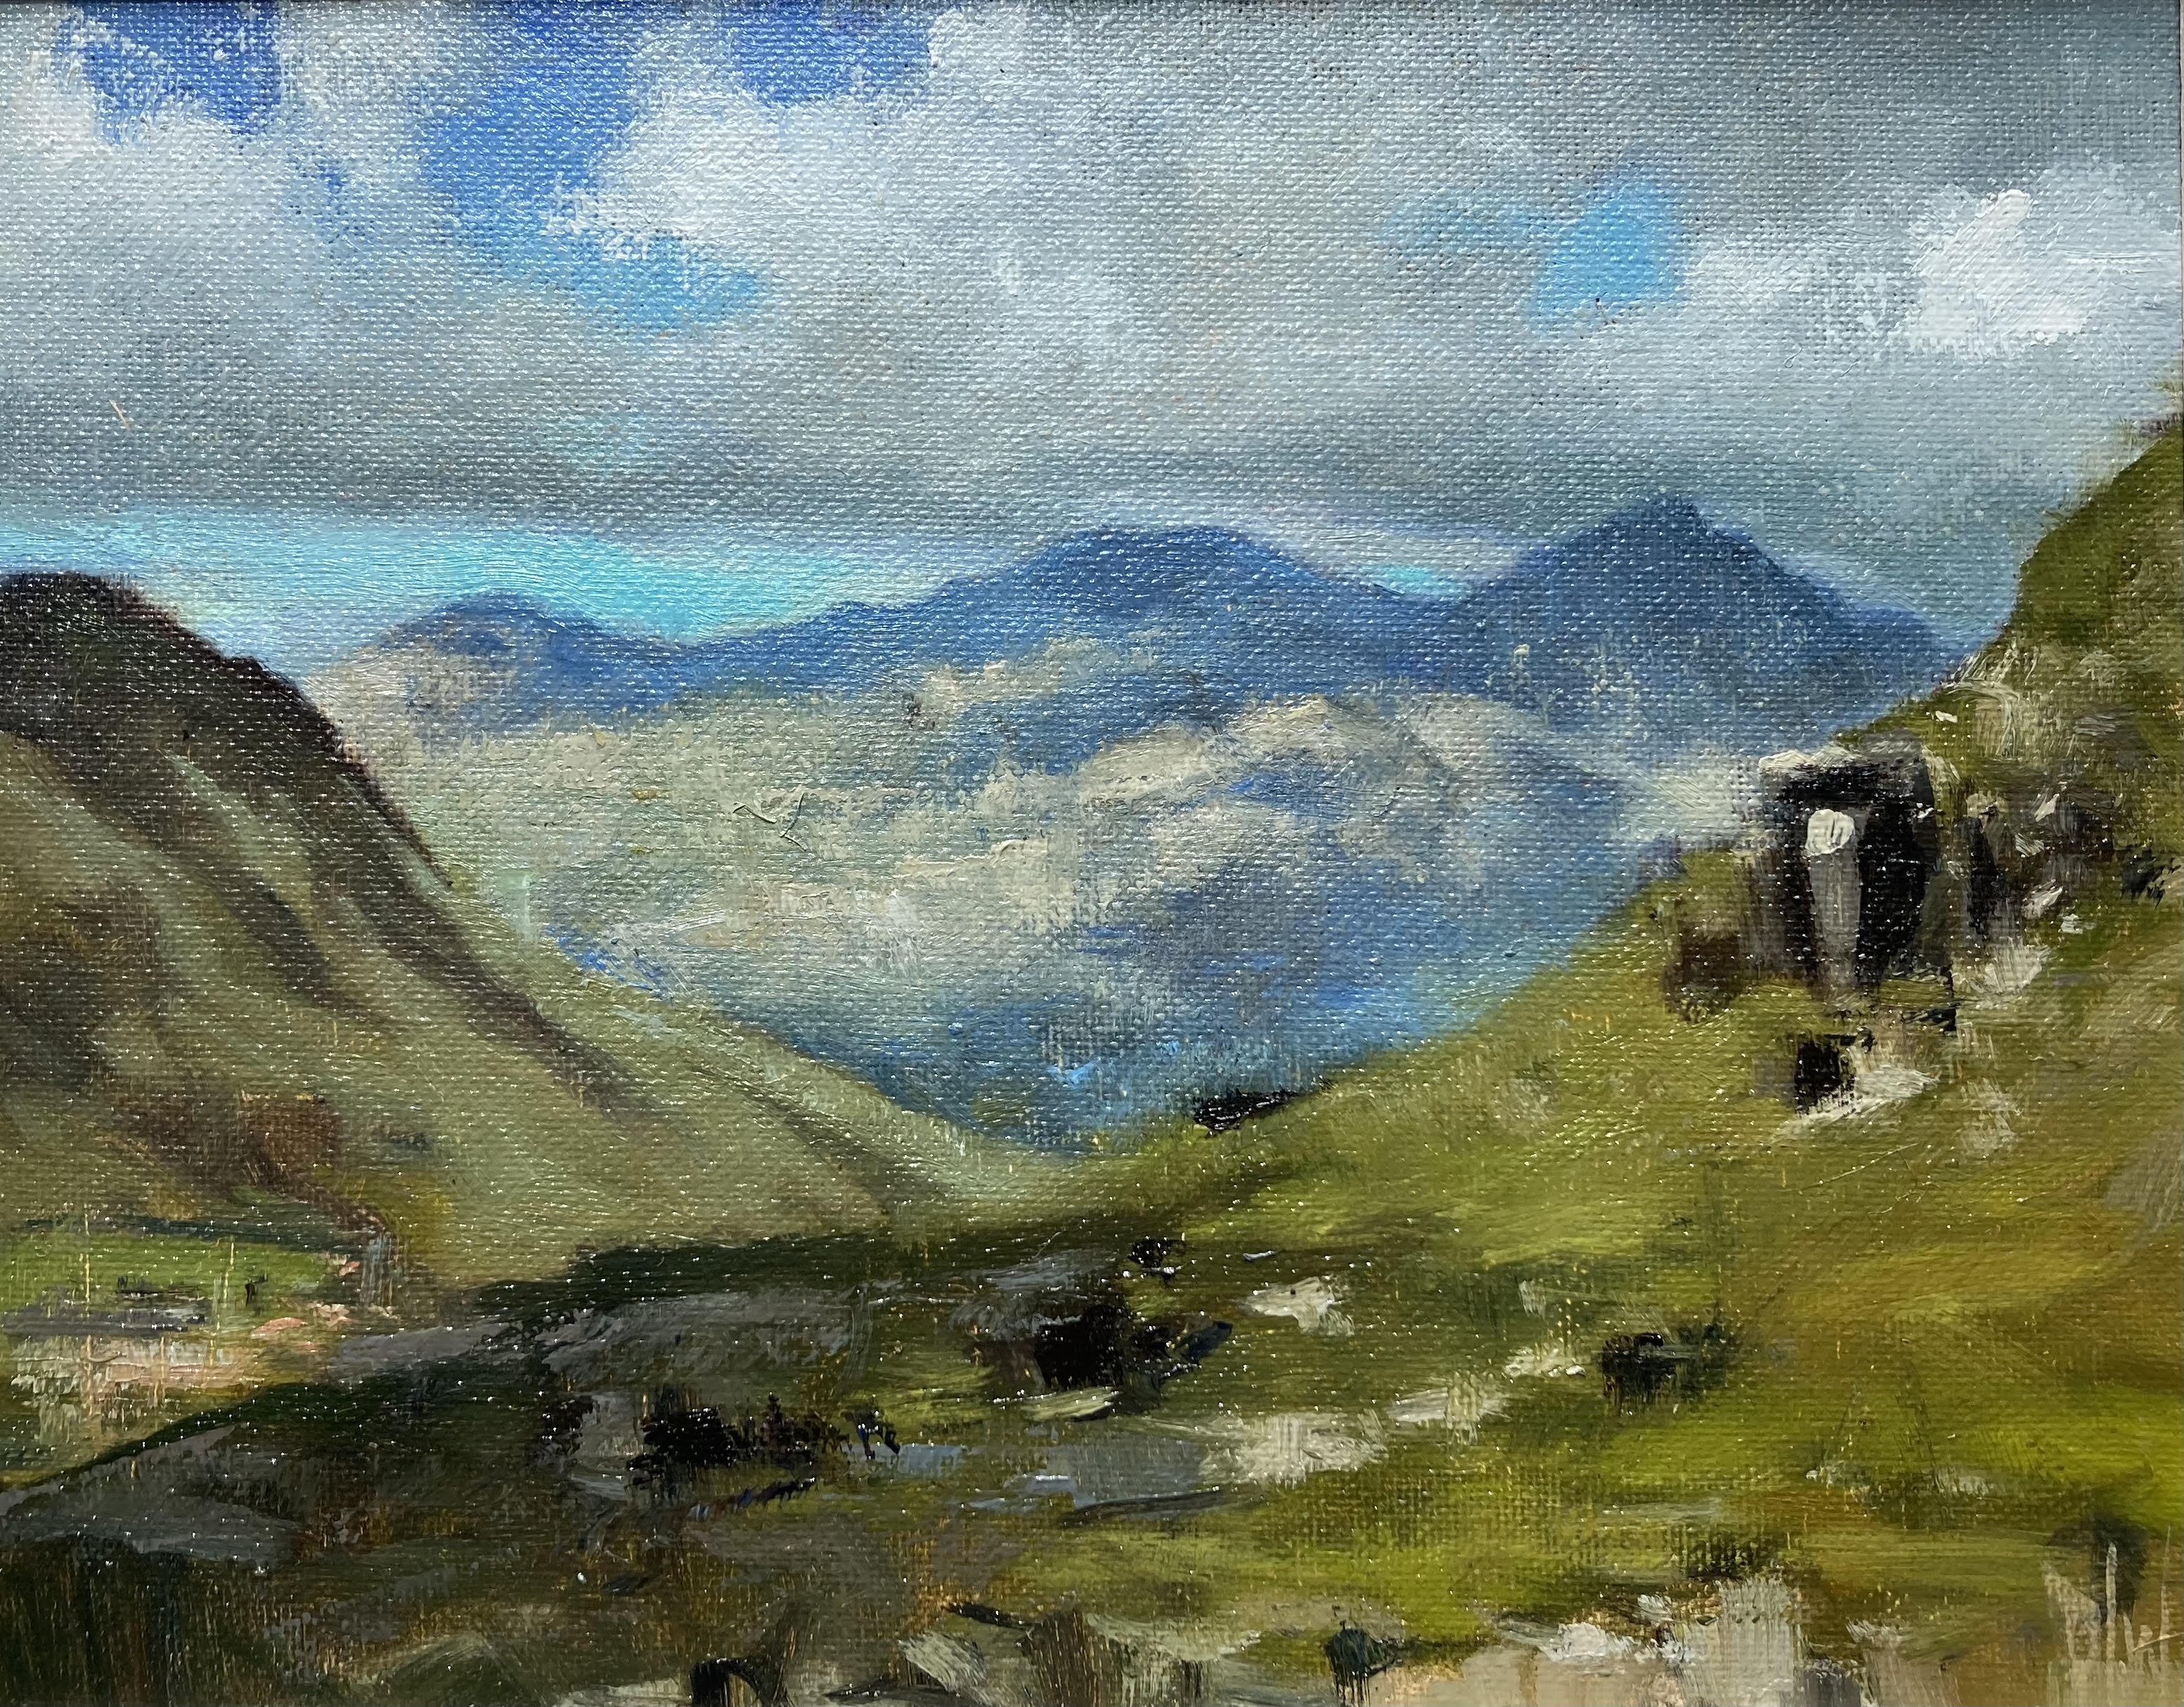 Mountains from Mauméan by Dave West